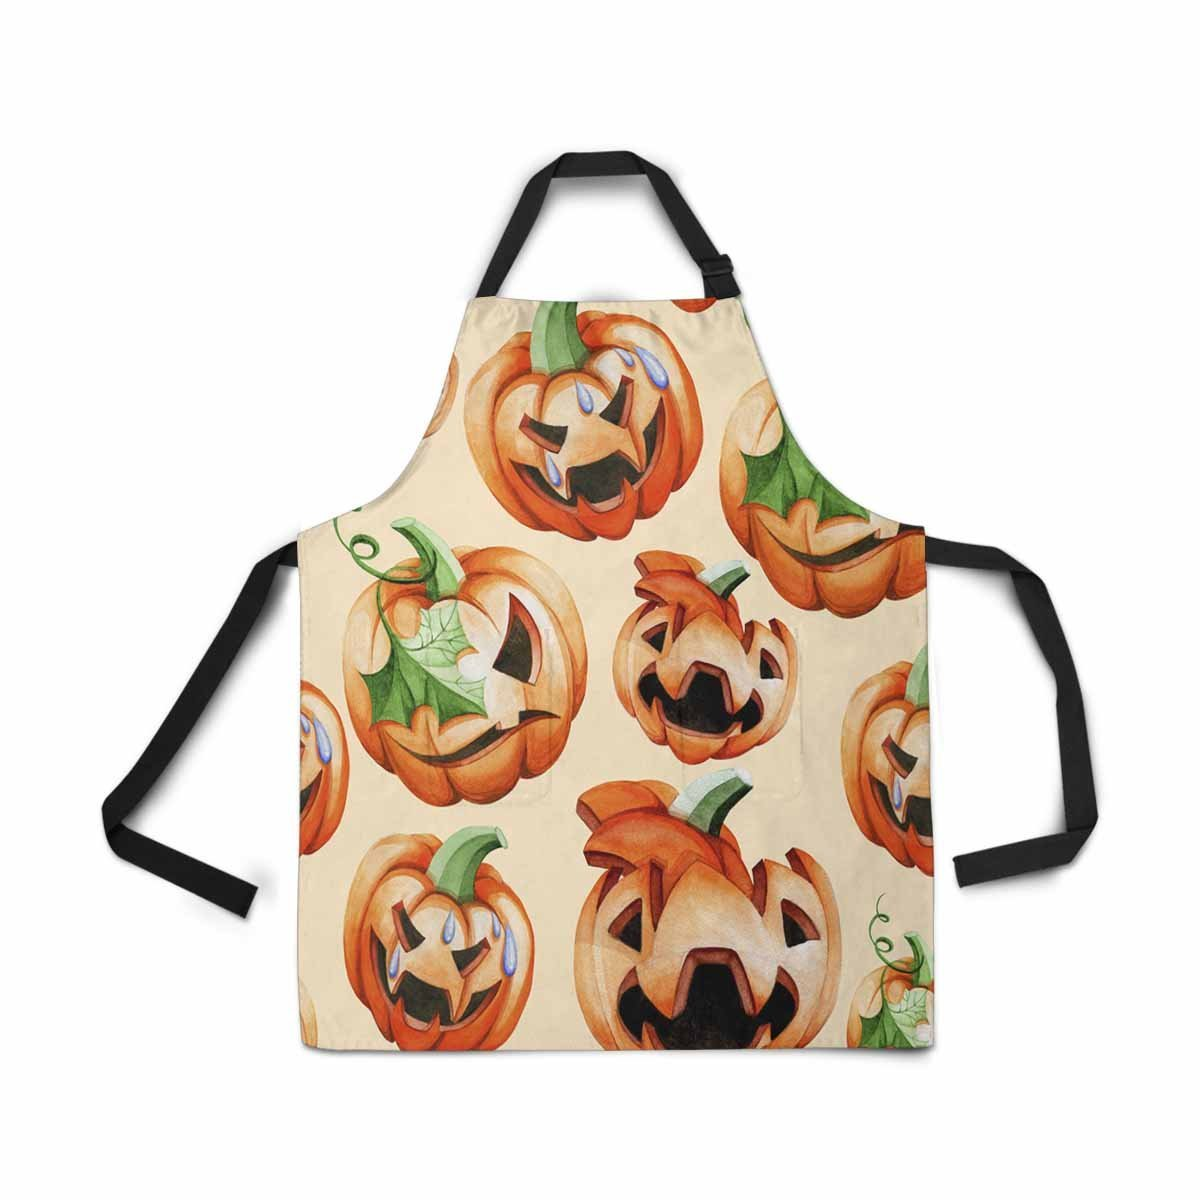 InterestPrint Treat Pumpkin Apron Kitchen Cook for Women Men Girls Chef with Pockets, Halloween Harvest Funny Adjustable Bib Baking Paint Cooking Apron Dress